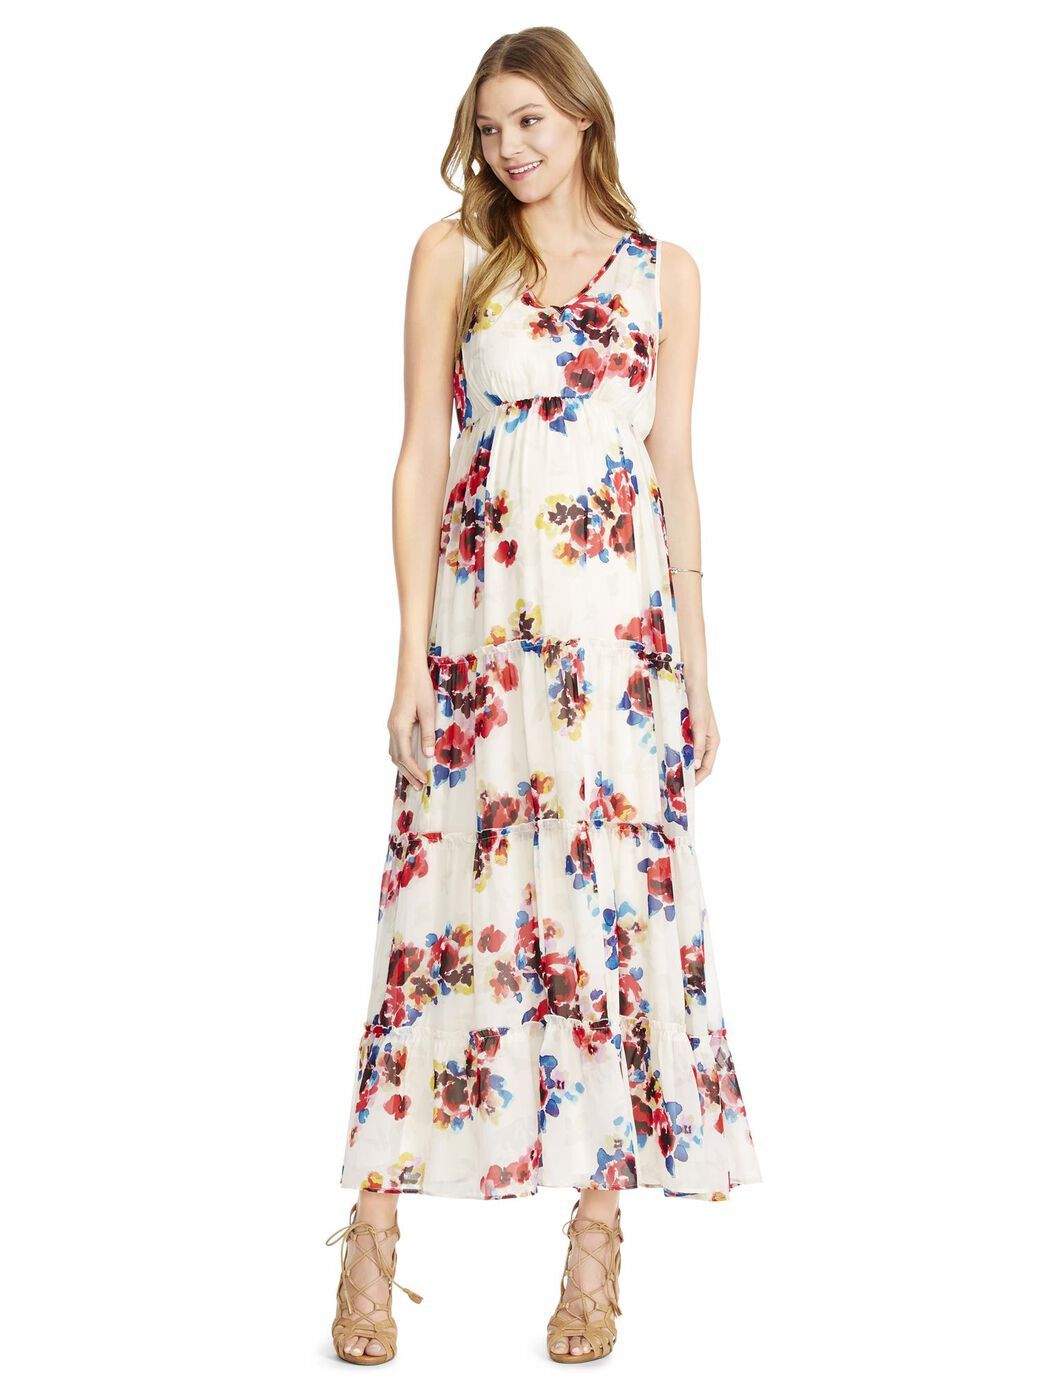 Jessica simpson empire waist floral maternity maxi dress jessica simpson empire waist floral maternity maxi dress watercolor floral ombrellifo Image collections